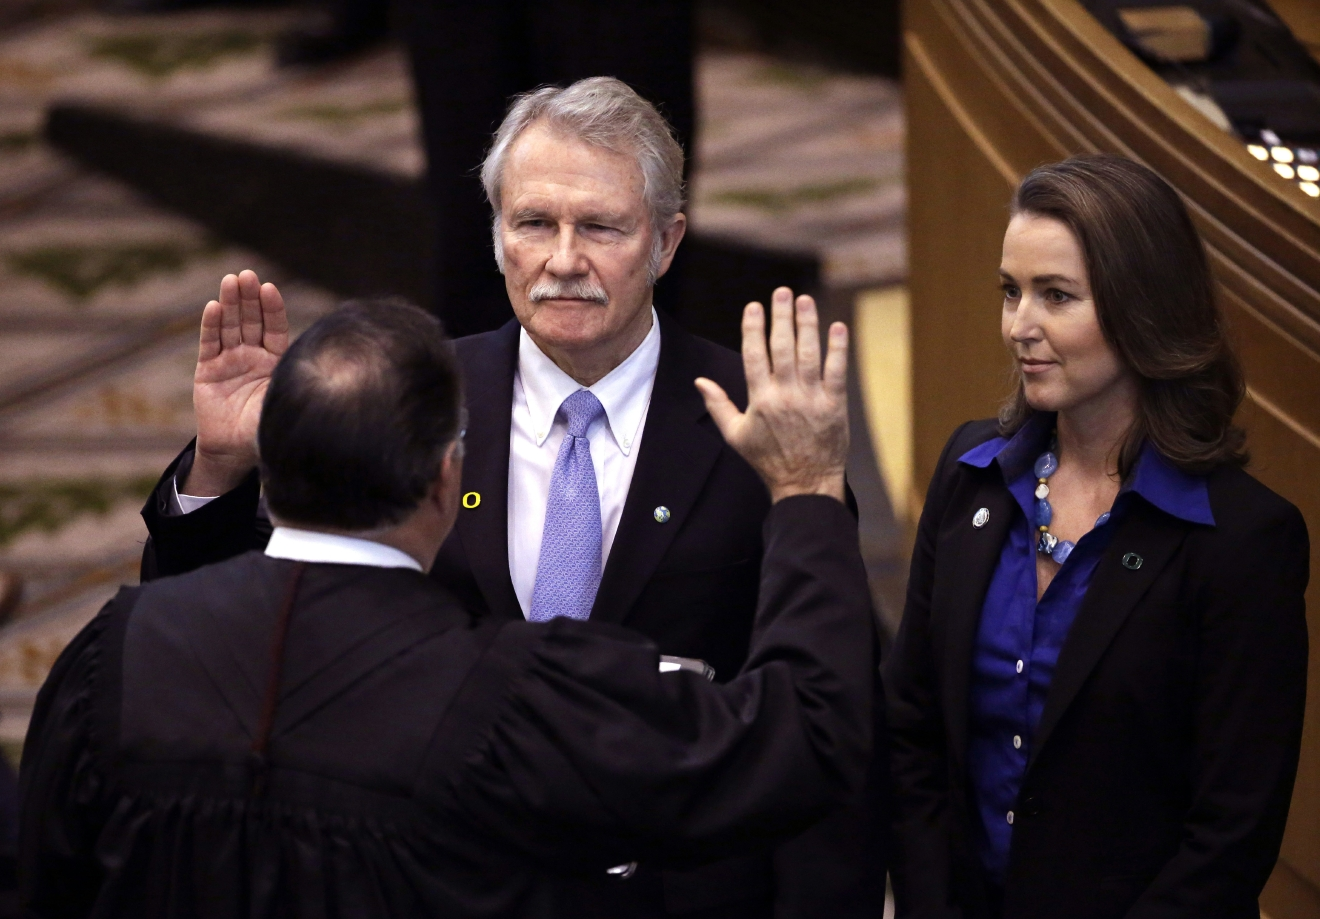 FILE - In this Jan. 12, 2015 file photo, Oregon Gov. John Kitzhaber, center, is joined by his fiancee, Cylvia Hayes, as he is sworn in for an unprecedented fourth term by Senior Judge Paul J. De Muniz in Salem, Ore. A U.S. House committee has found former Gov. Kitzhaber and a federal agency mishandled the creation of Oregon's health insurance enrollment website, with the Democratic governor's political advisers making decisions based on his re-election campaign. (AP Photo/Don Ryan, File)